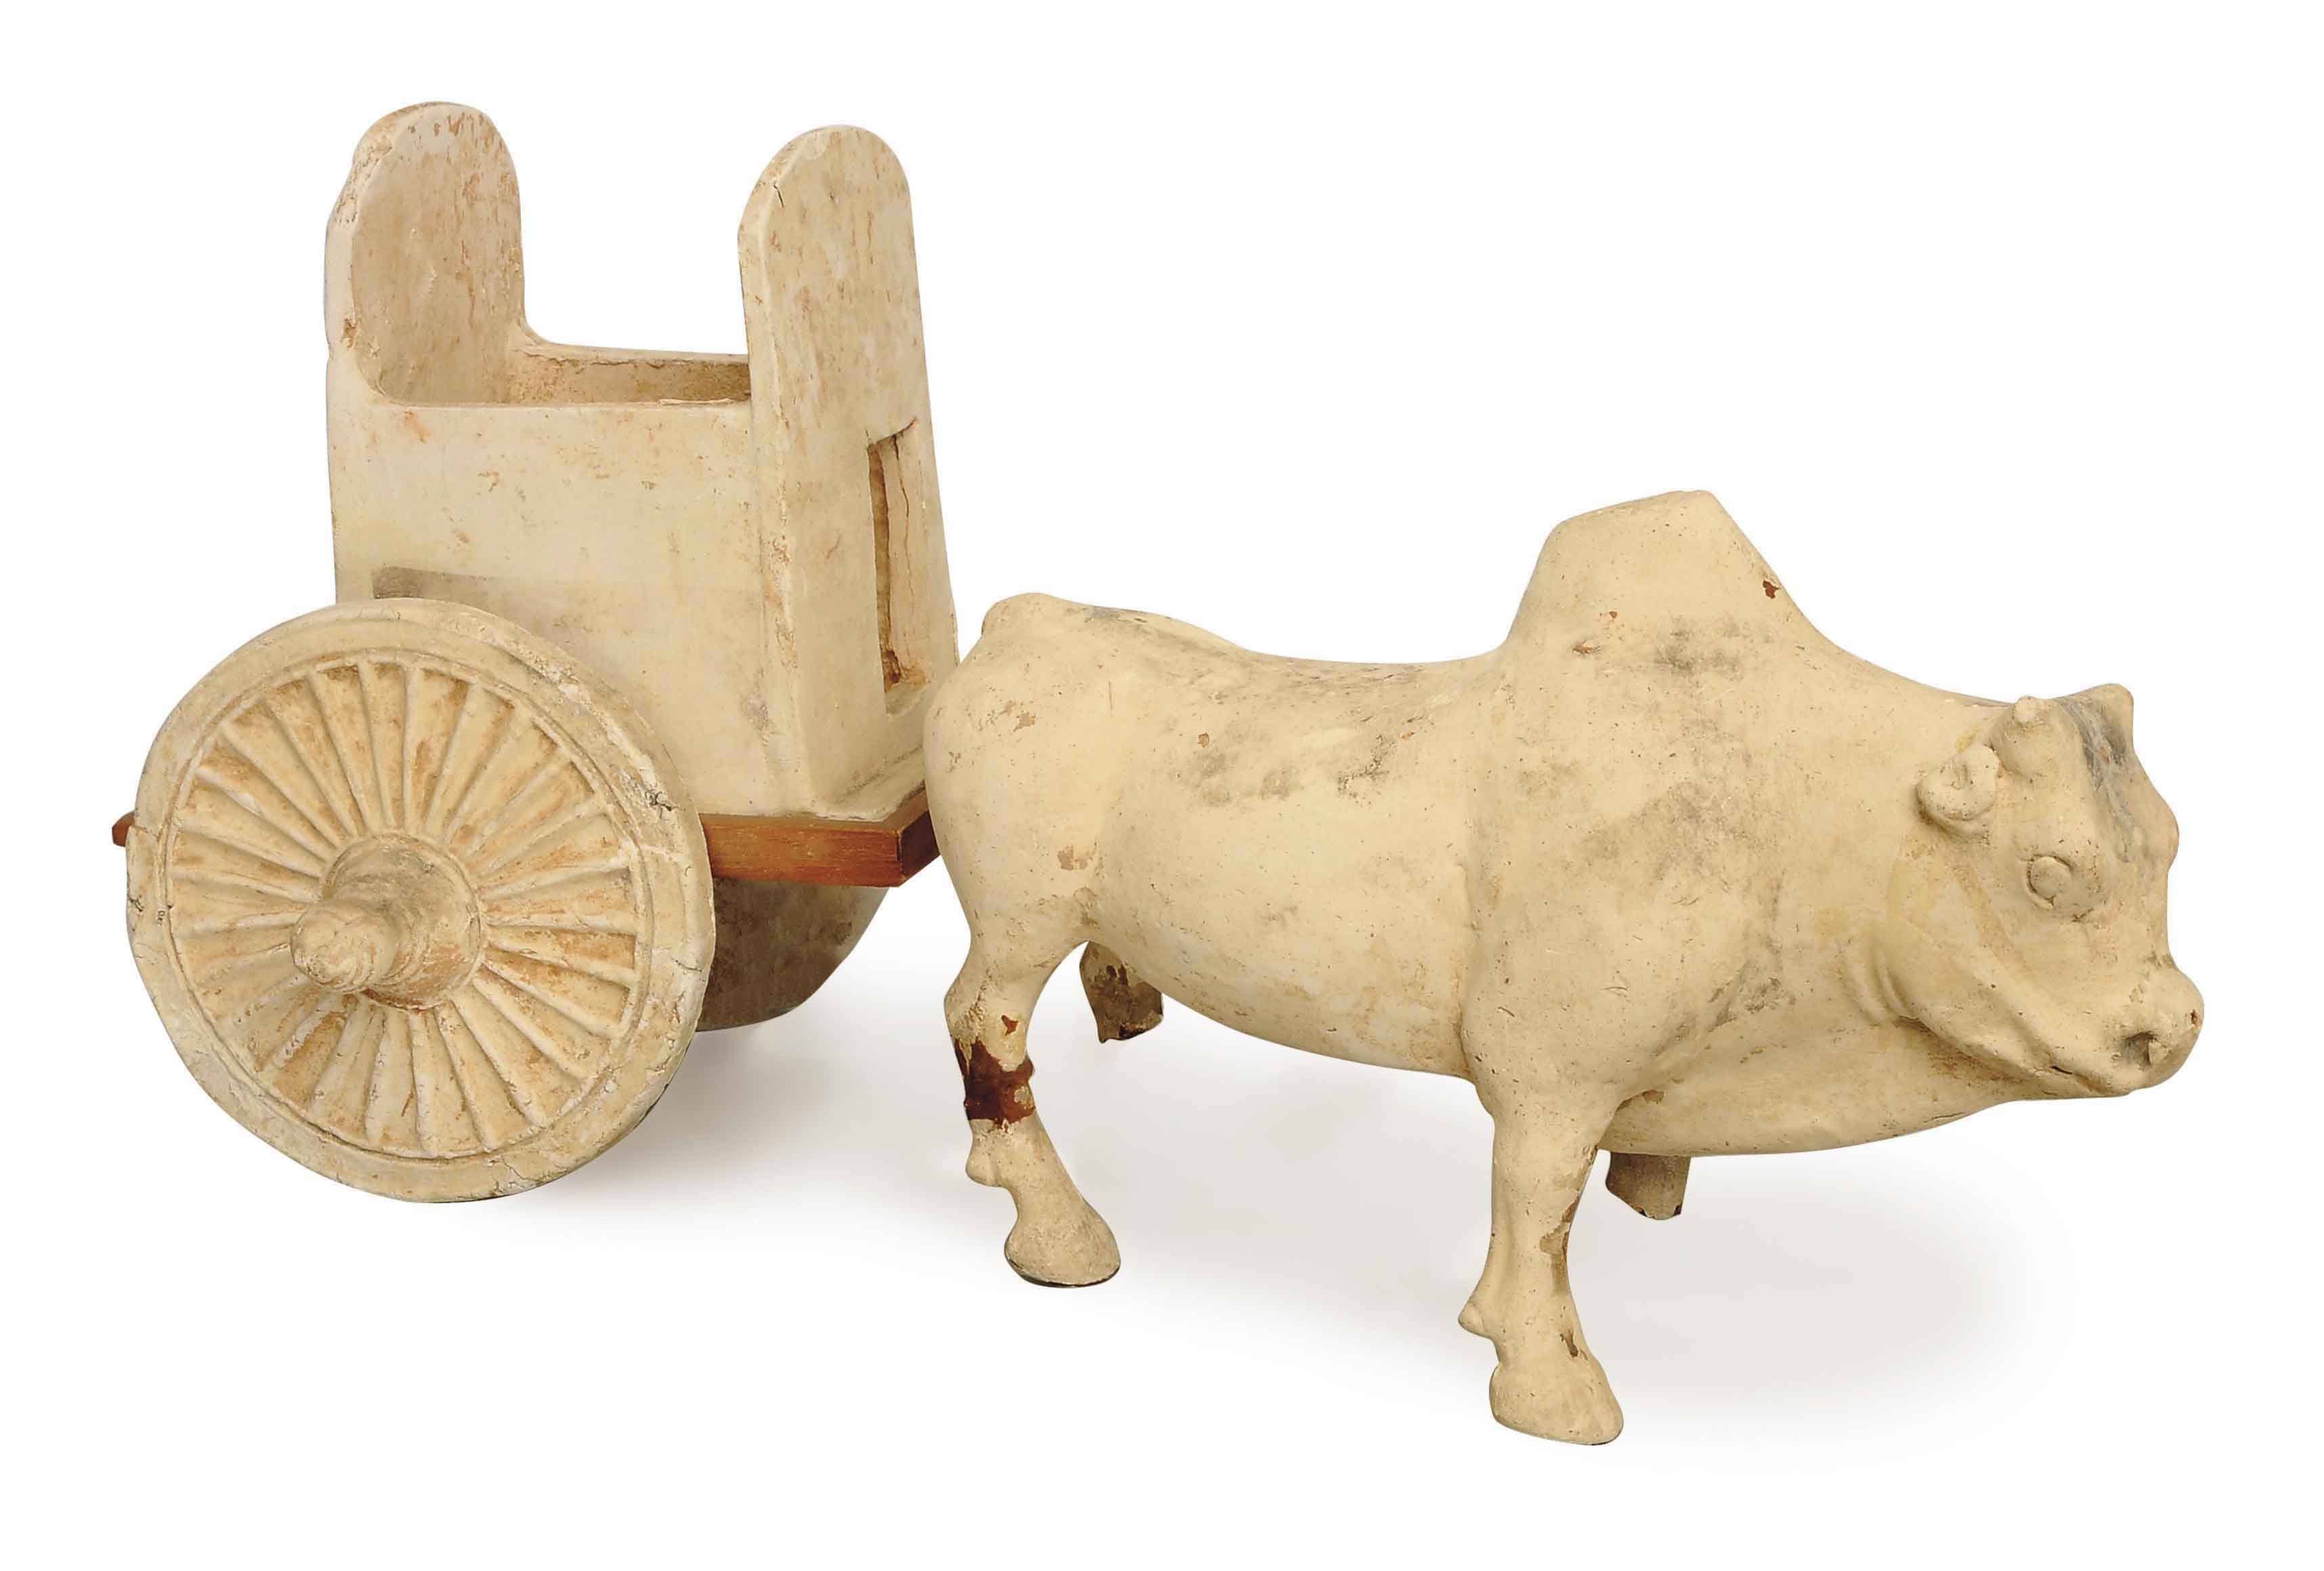 A CHINESE POTTERY MODEL OF AN OX AND CART,